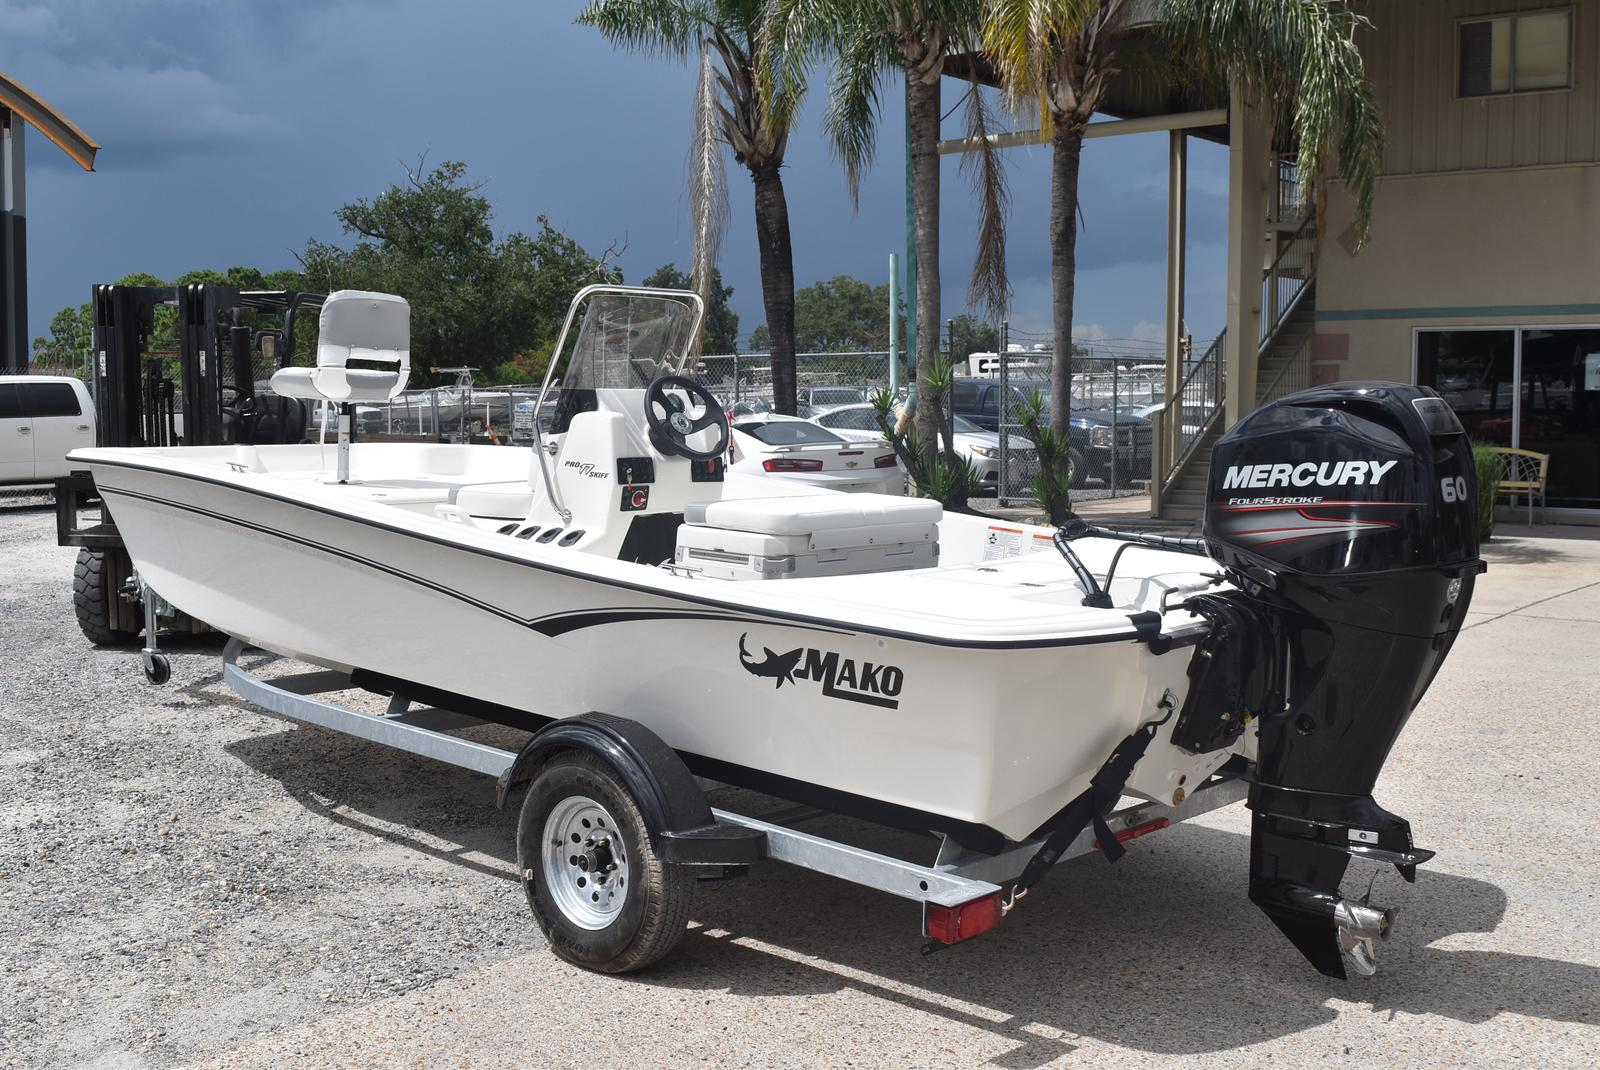 2020 Mako boat for sale, model of the boat is Pro Skiff 17, 75 ELPT & Image # 233 of 702